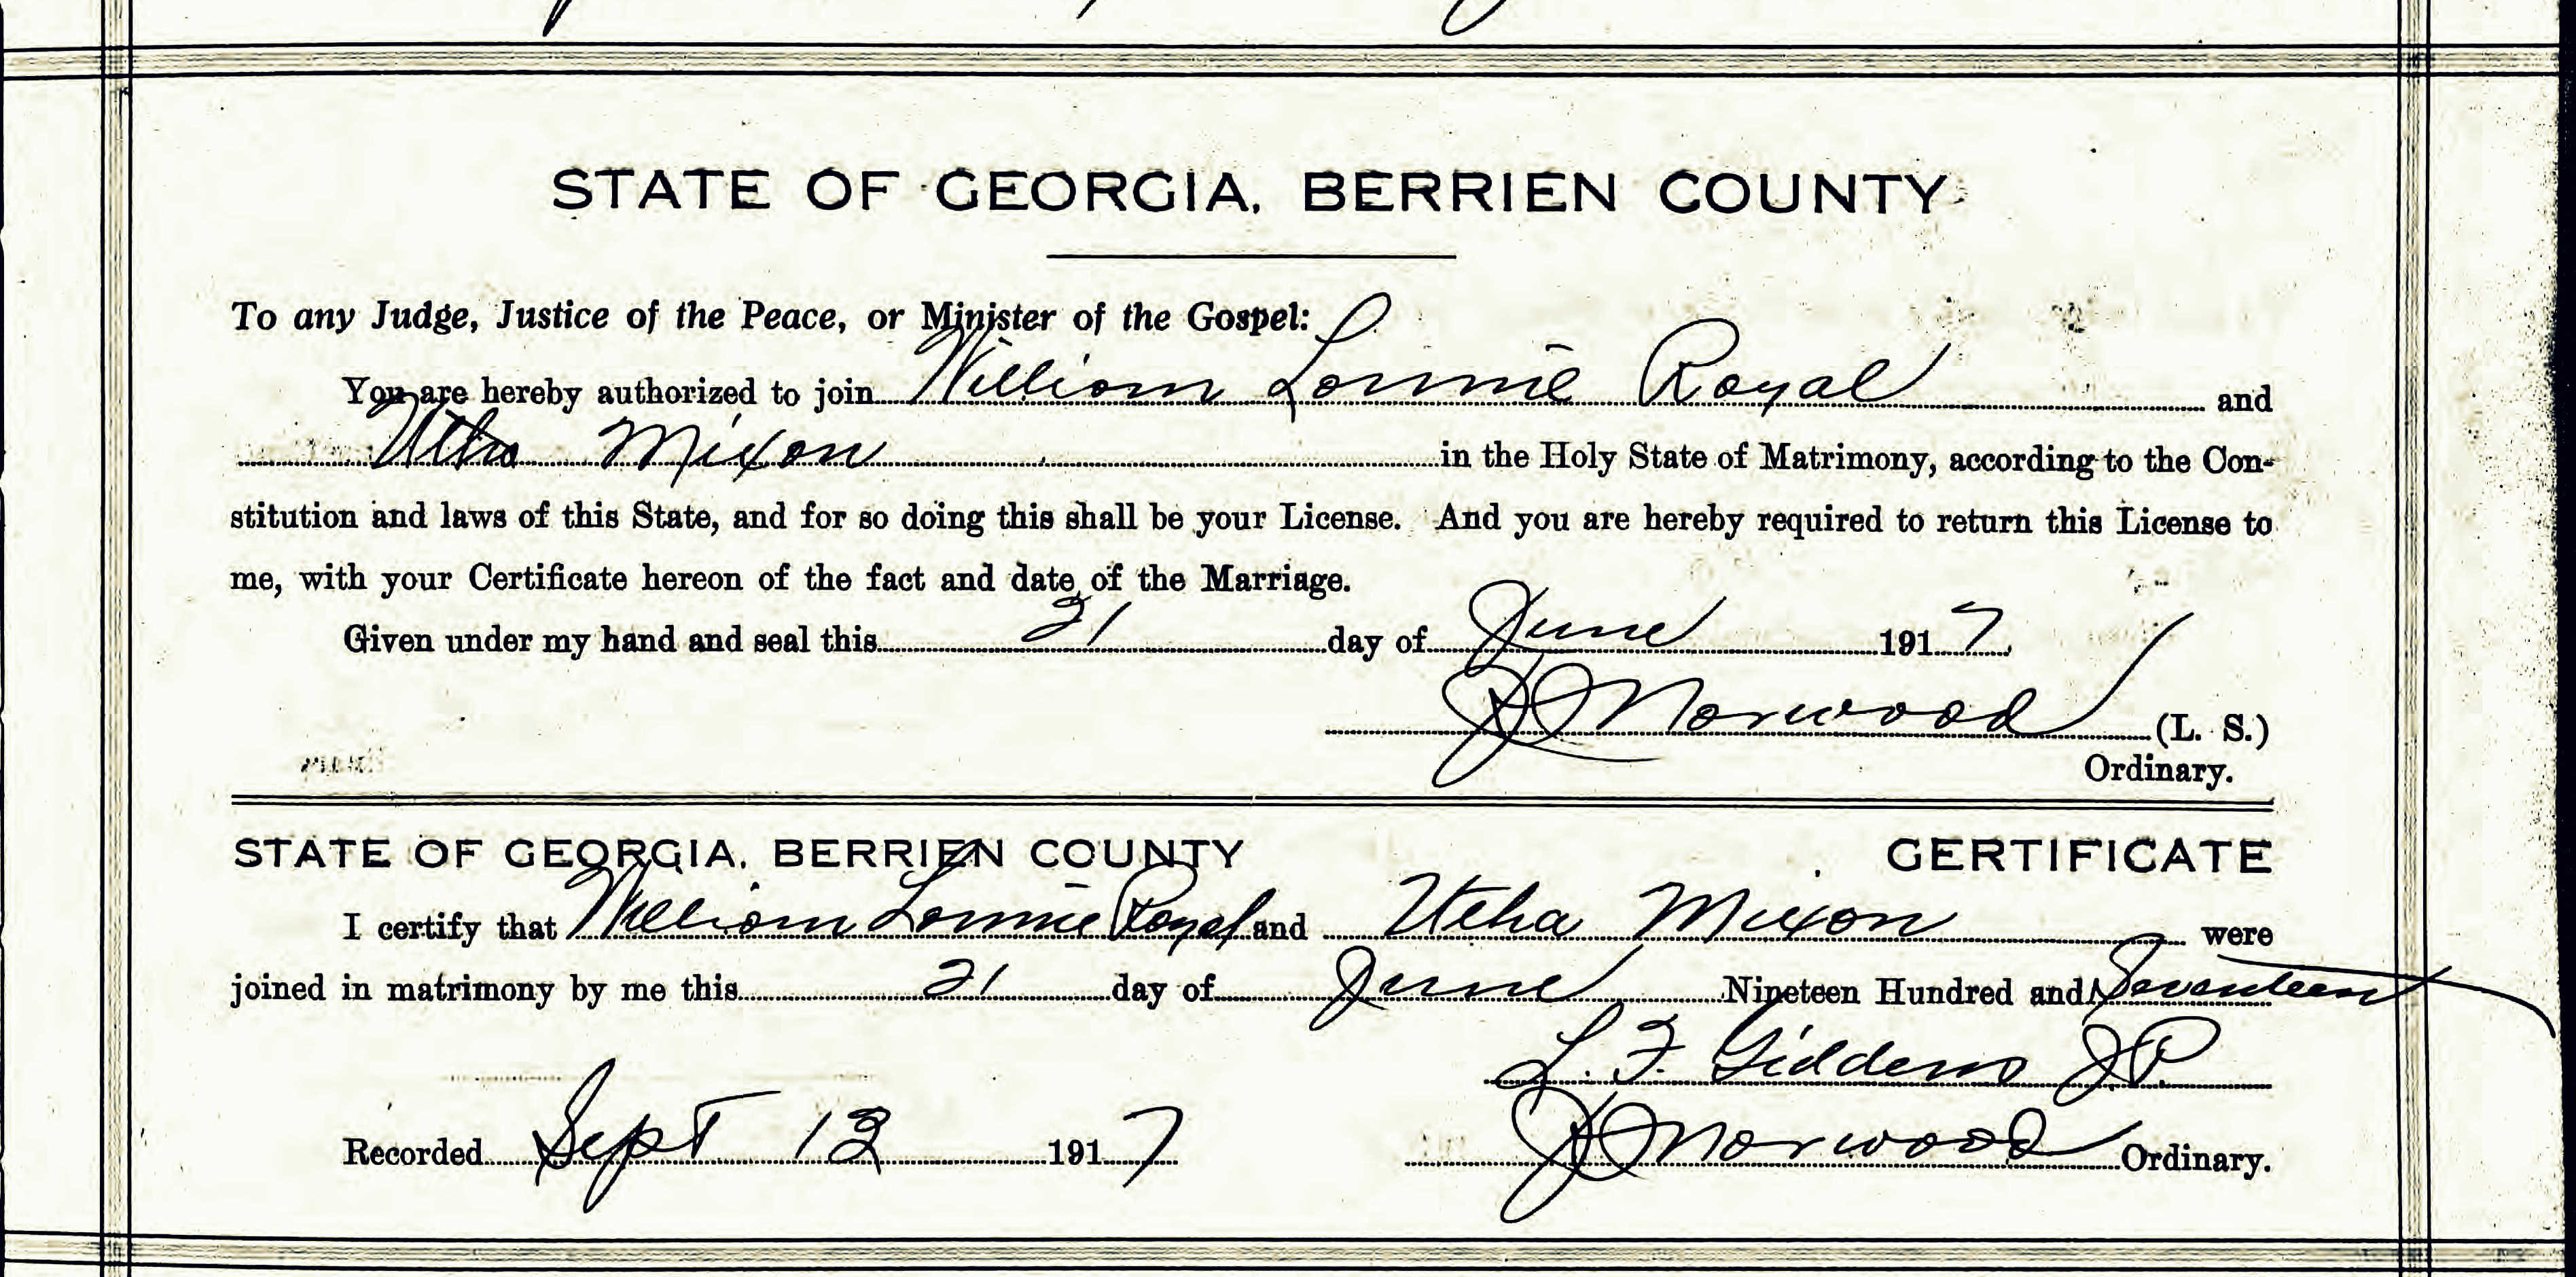 July 2014 ray city history blog marriage certificate of william lonnie royal and utha mixon berrien county ga aiddatafo Images